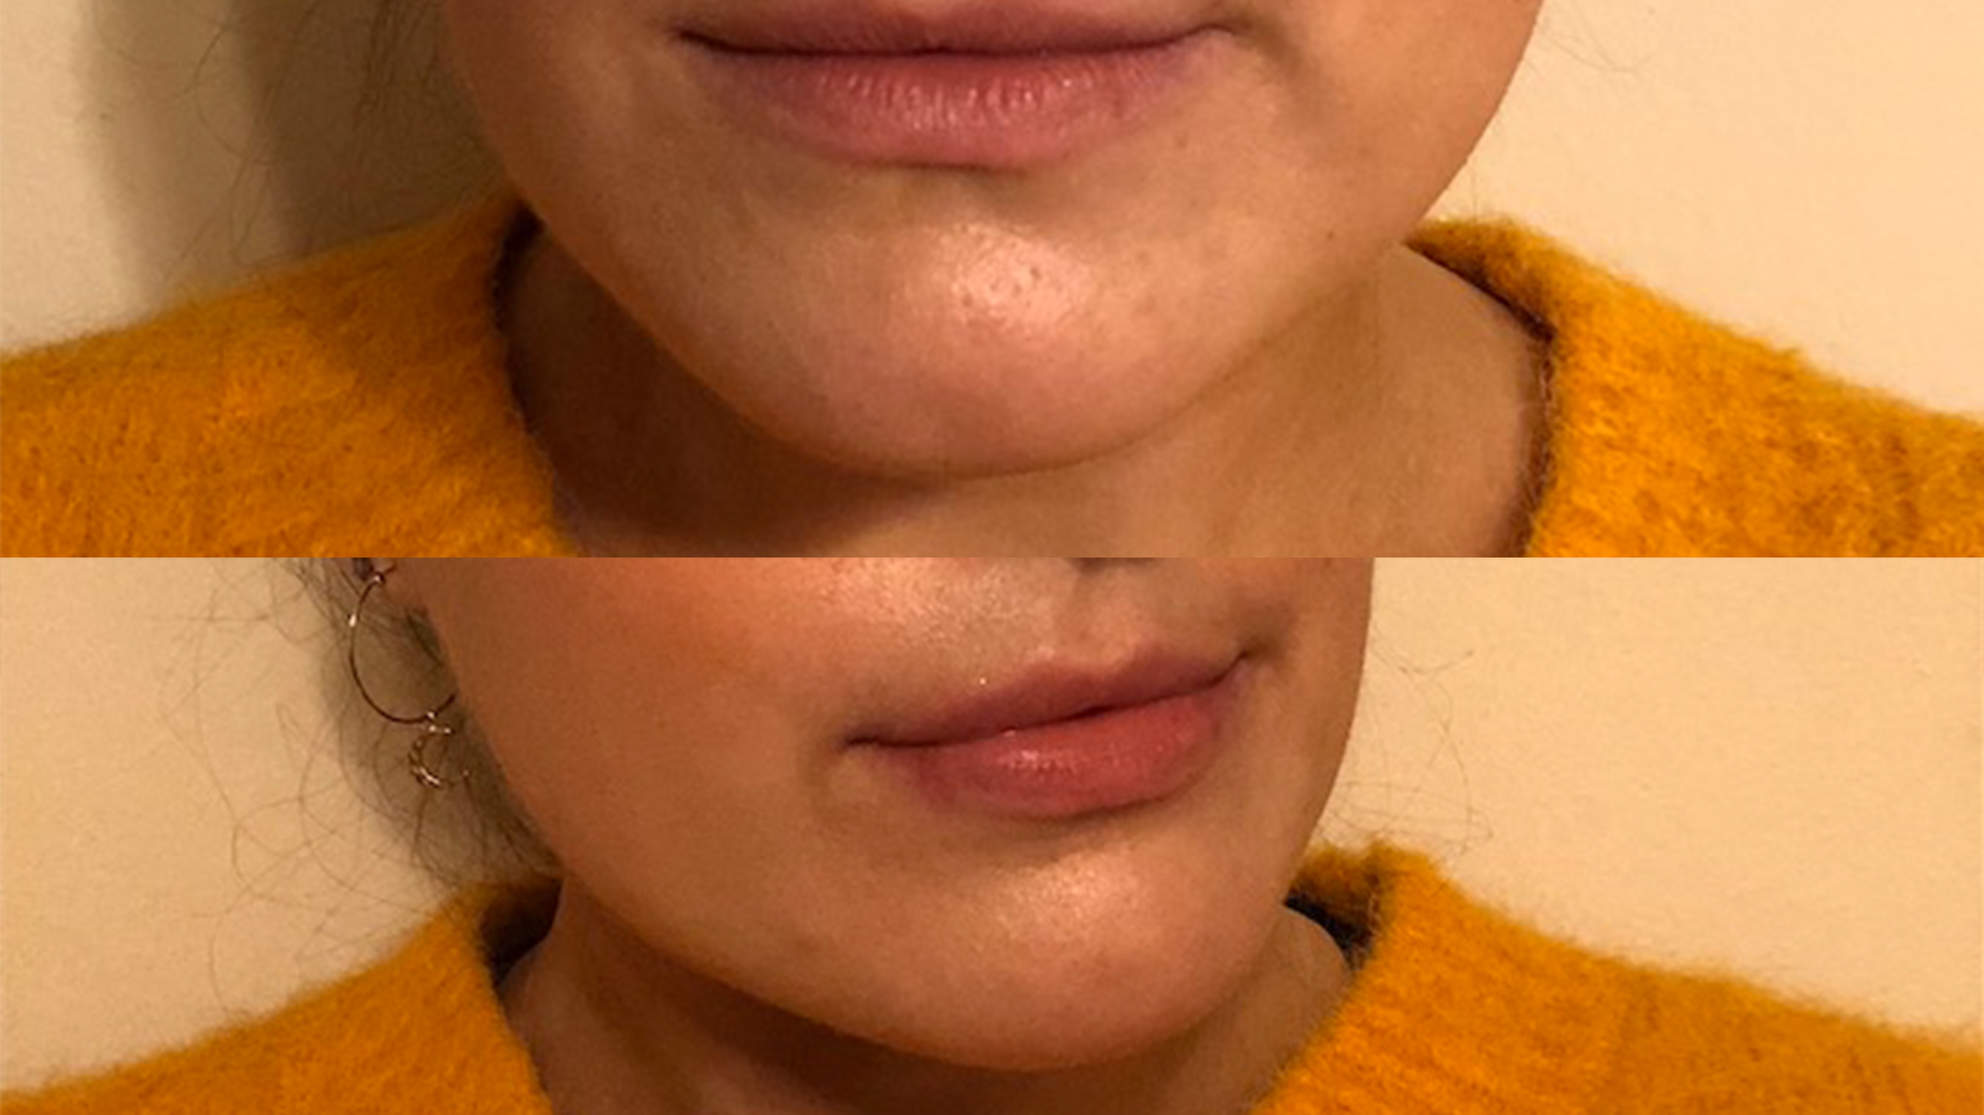 Plumped Lips Before and After